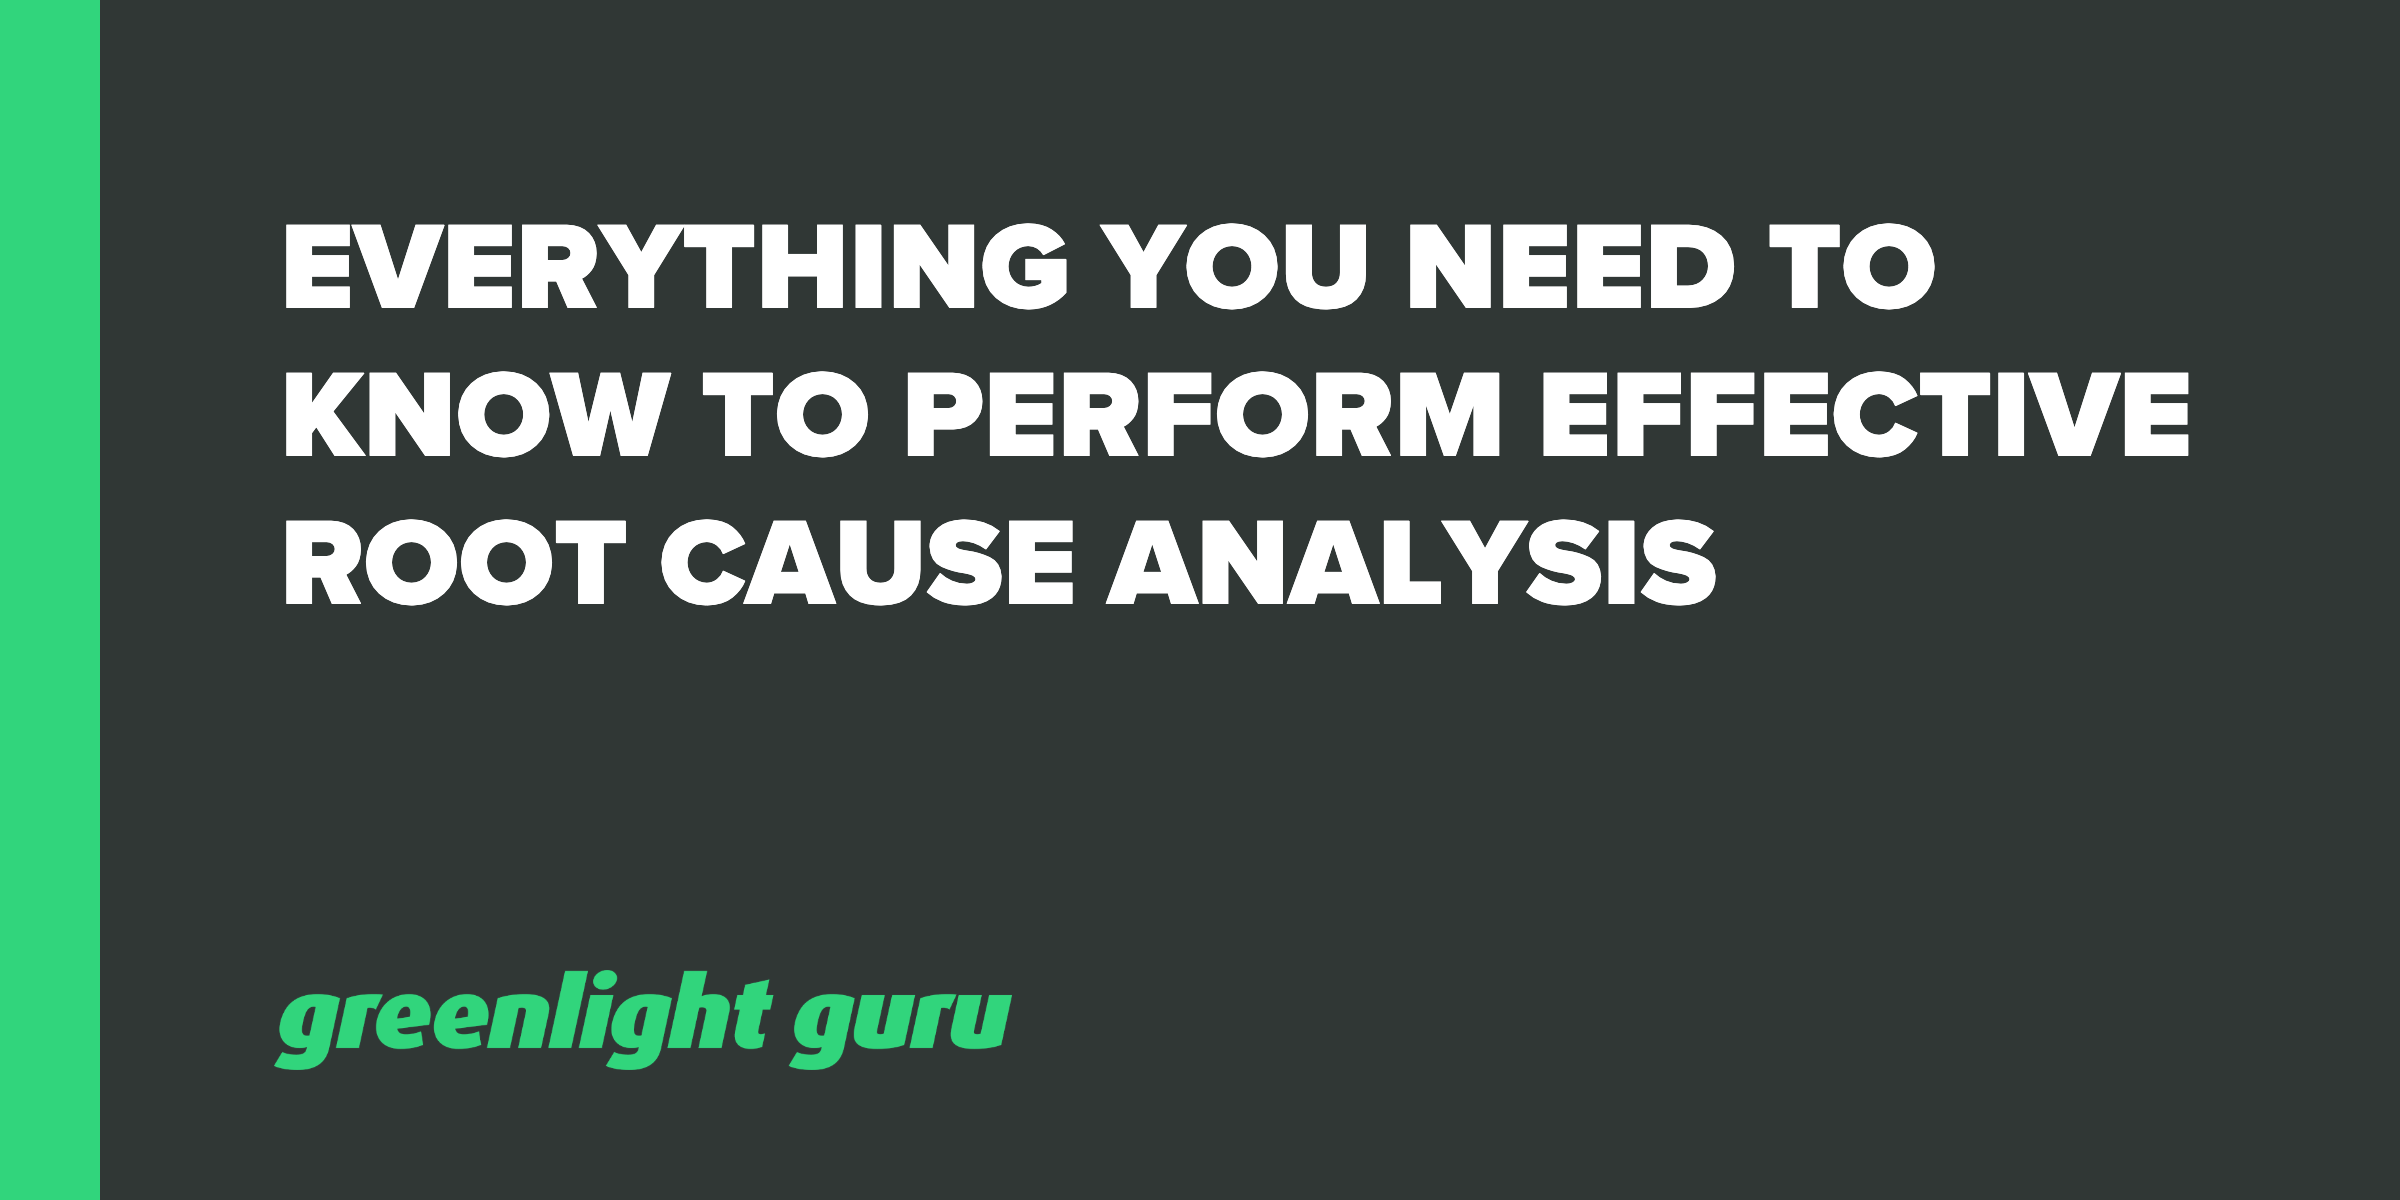 EVERYTHING YOU NEED TO KNOW TO PERFORM EFFECTIVE ROOT CAUSE ANALYSIS